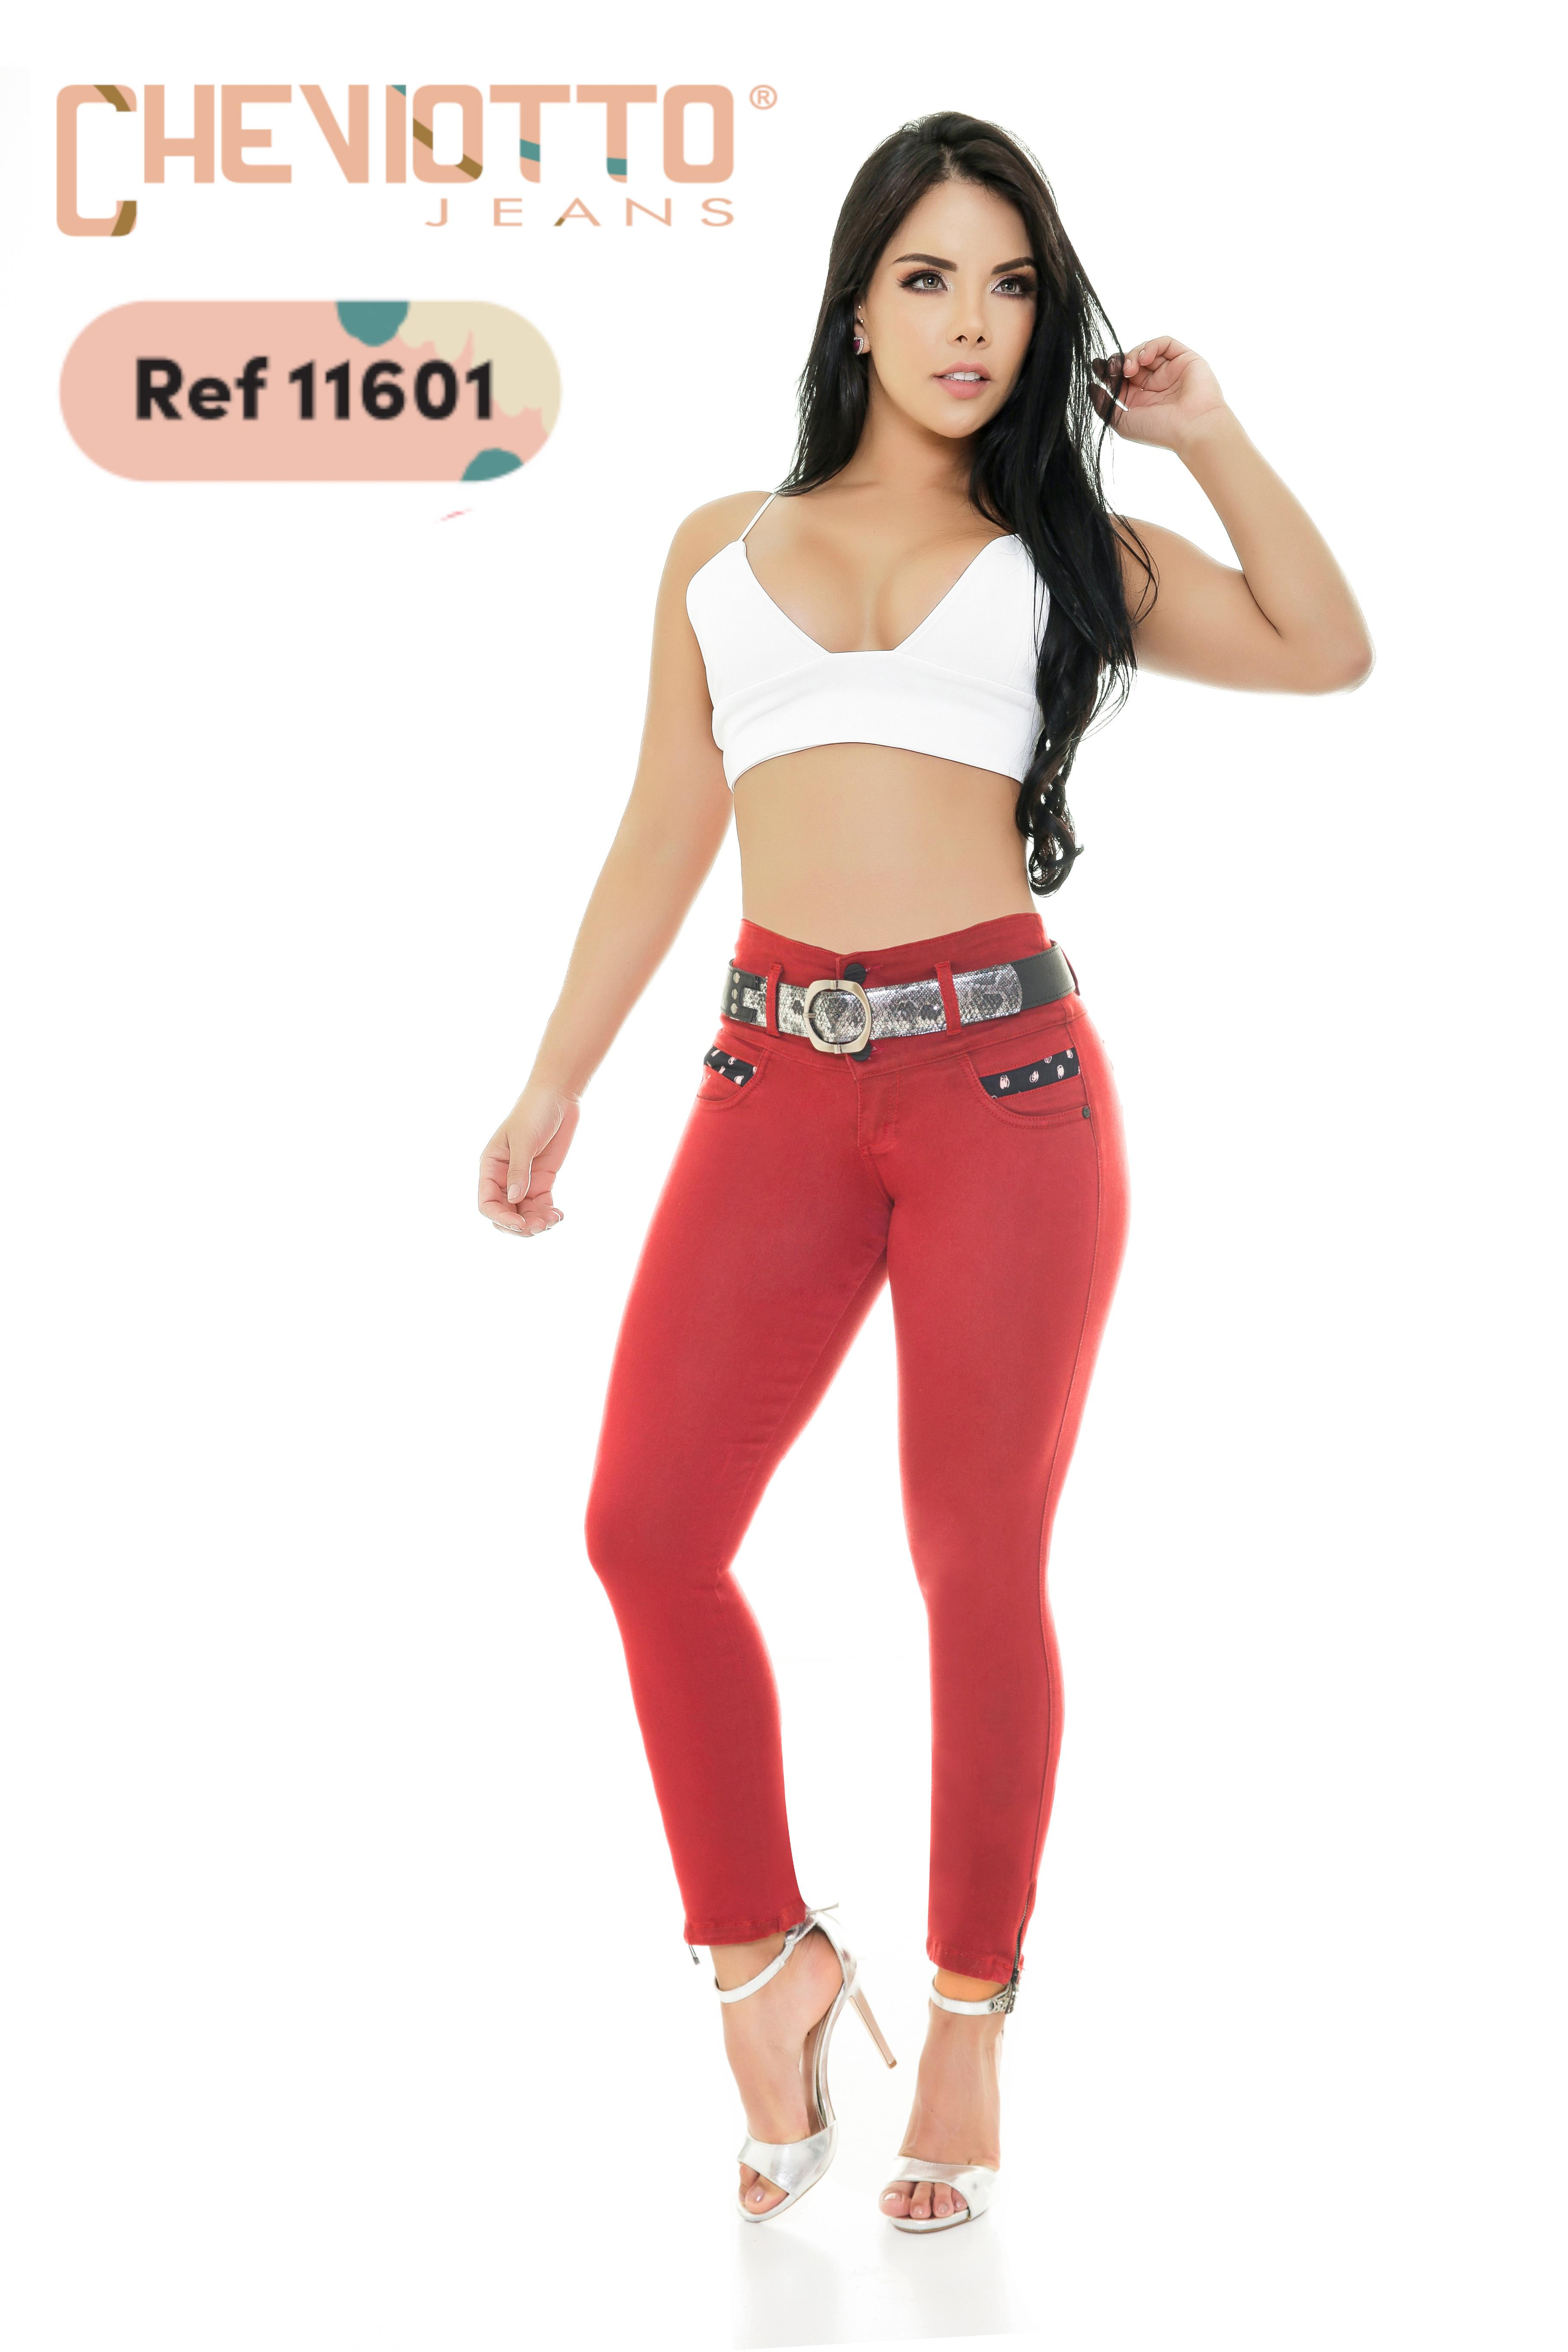 Lady Vaquero trousers Cheviotto Effect Derriere and exclusive design